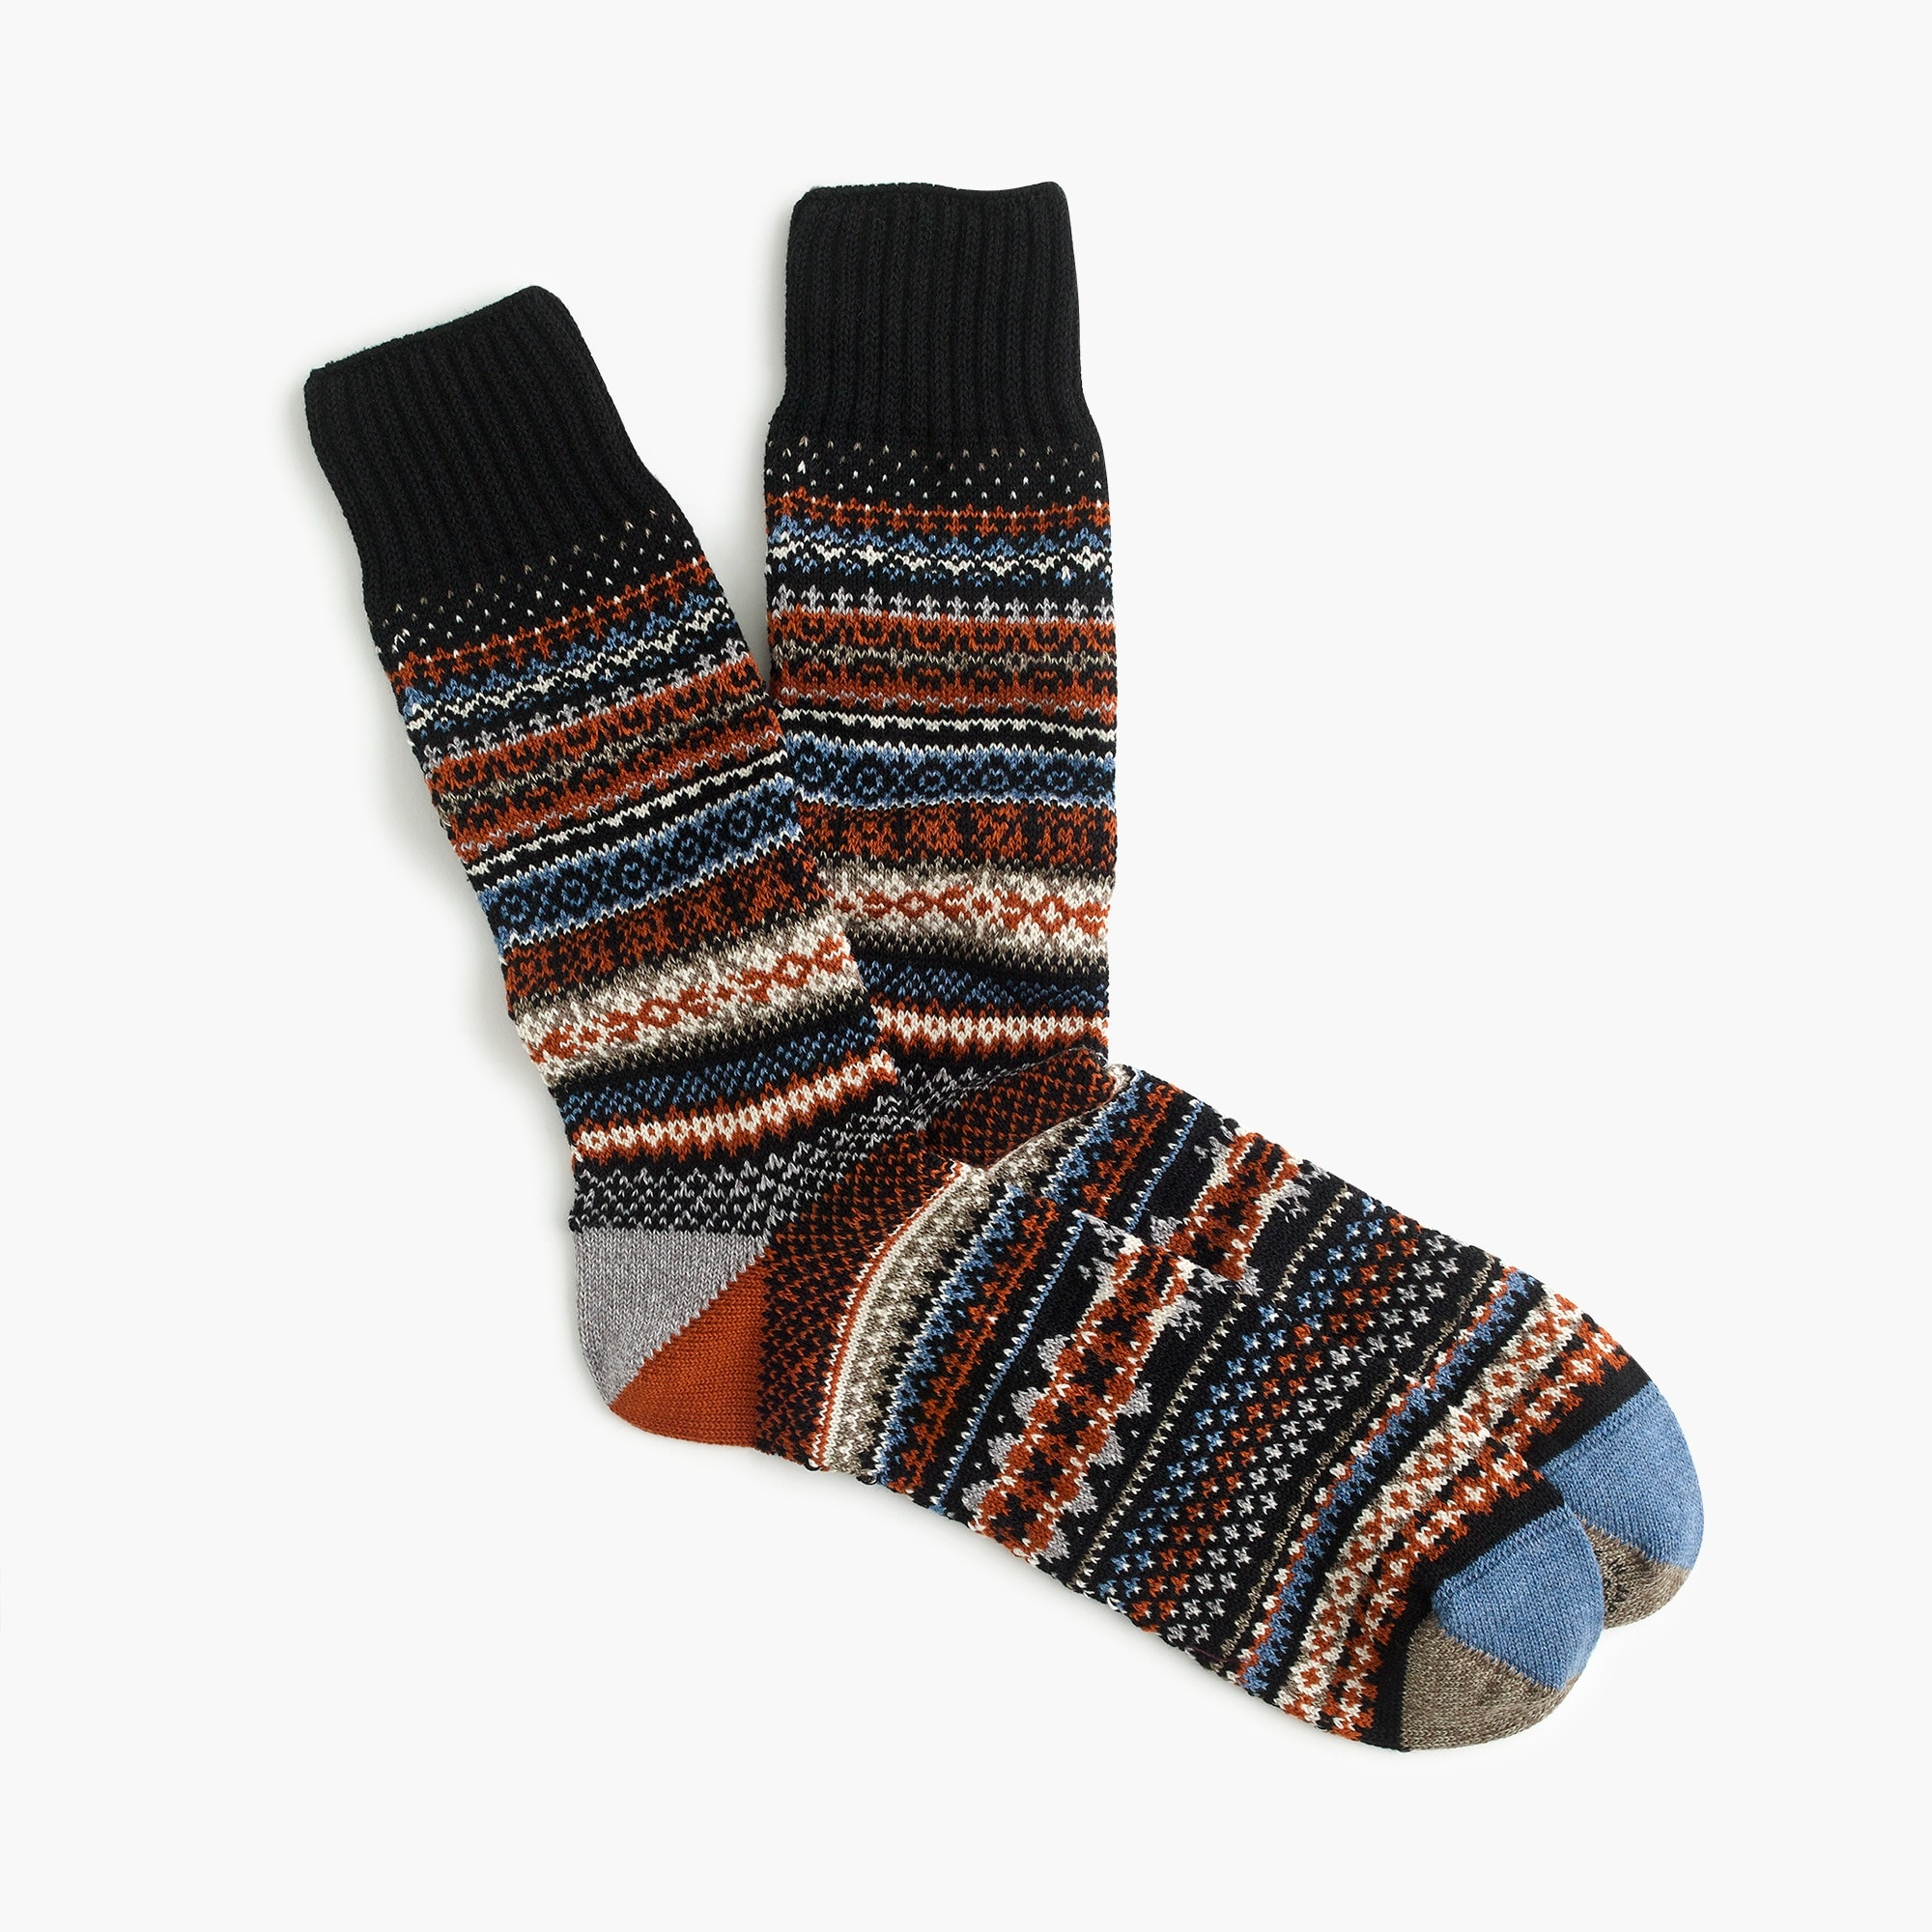 chup fika socks - men's accessories